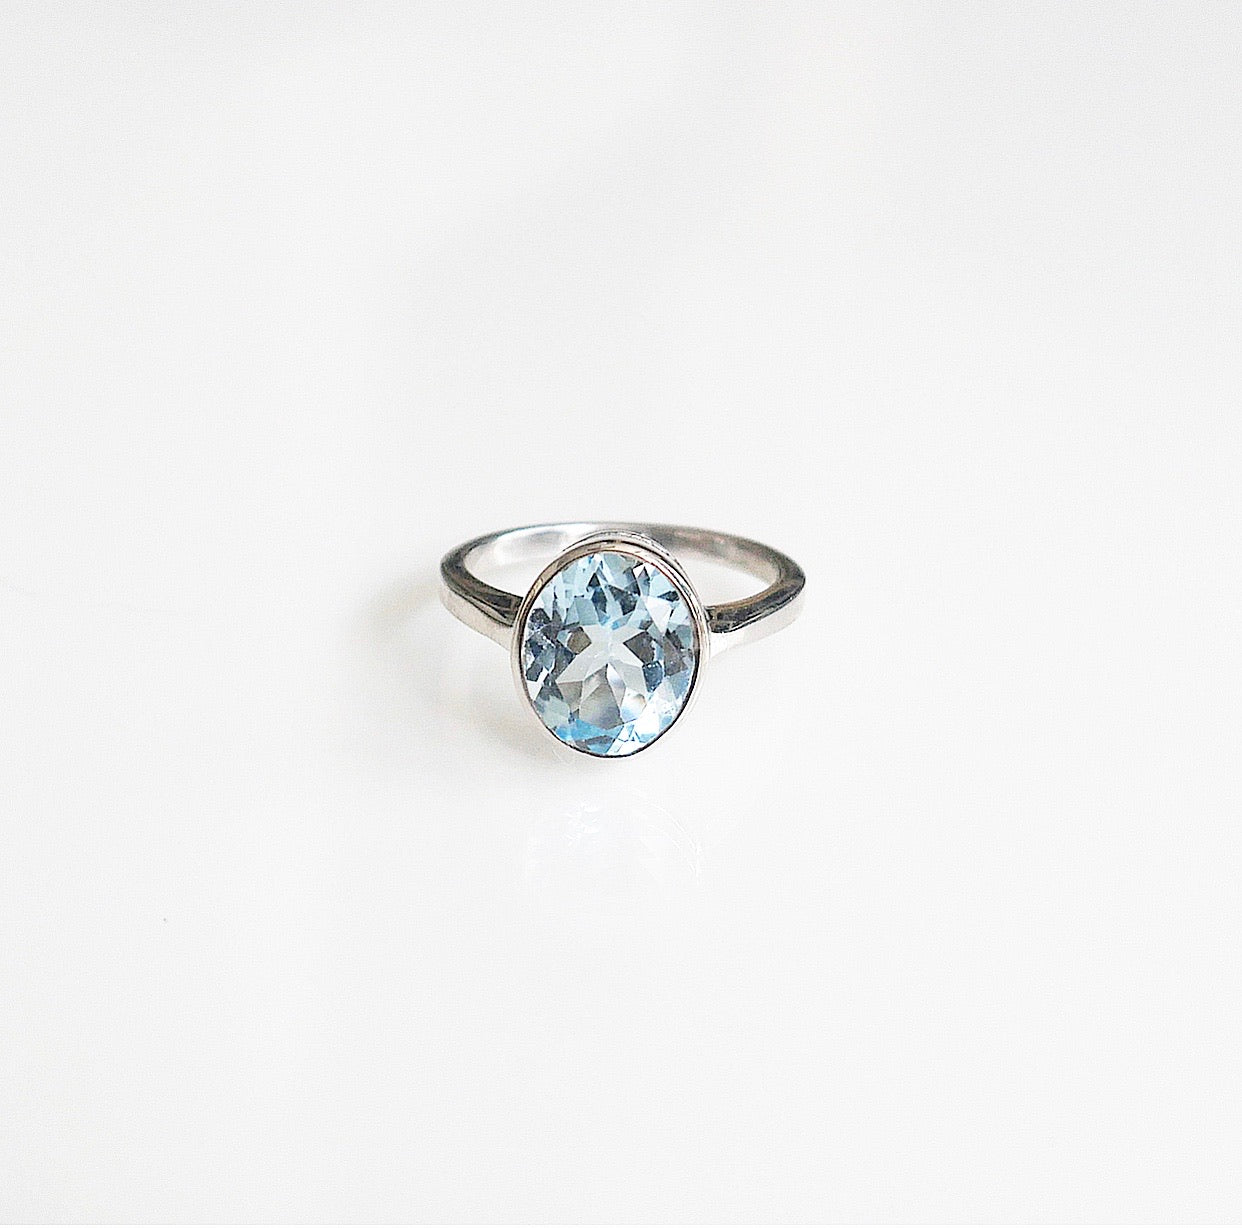 oval topaz ring in .925 sterling silver, KesleyBoutique, Girlwith3jobs, sterling silver sky blue topaz ring